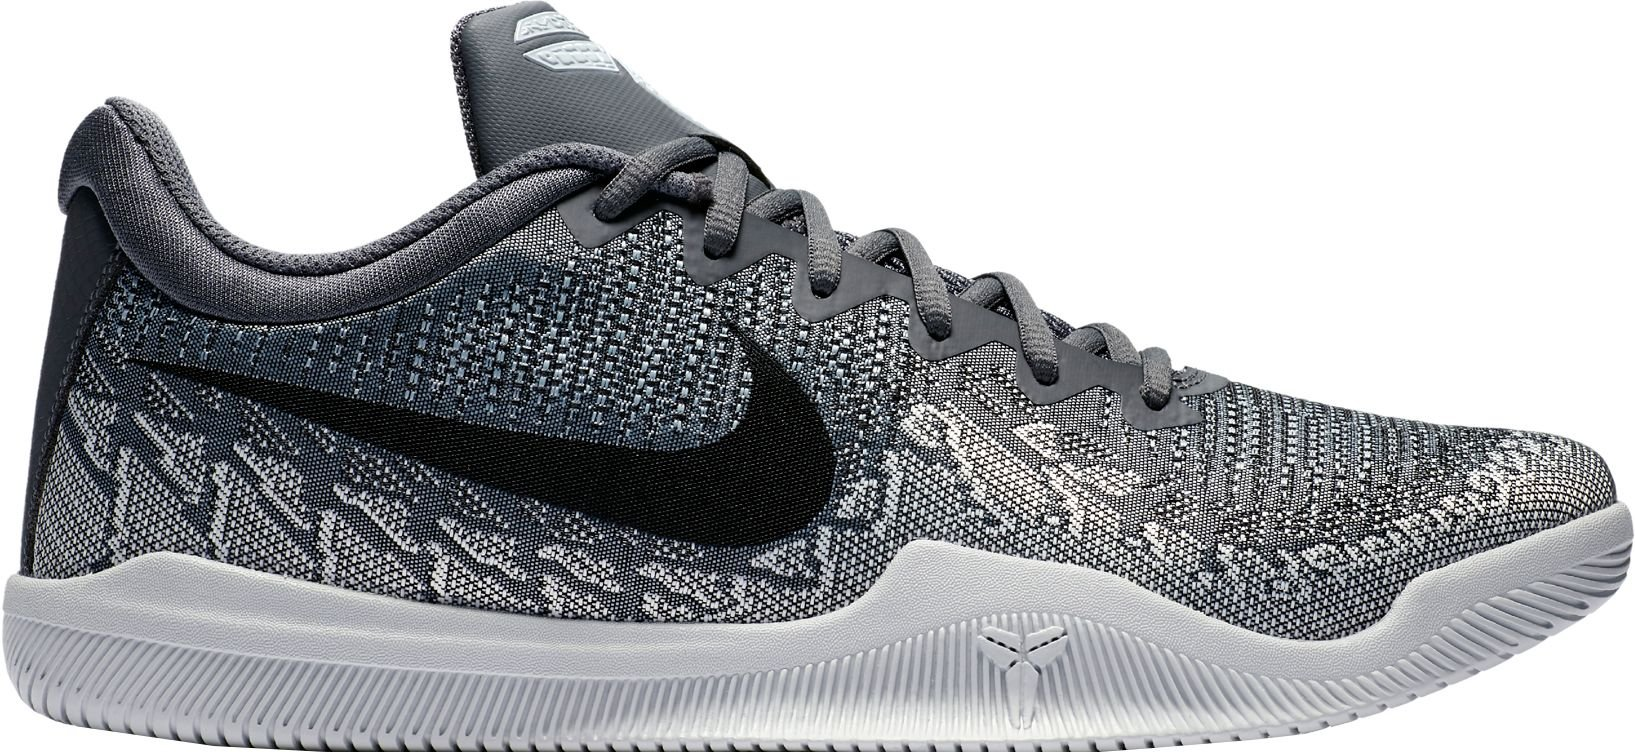 c858b41a0a00ae Galleon - Nike Men s Mamba Rage Basketball Shoes Dark Grey Black Pure  Platinum White Size 9 M US